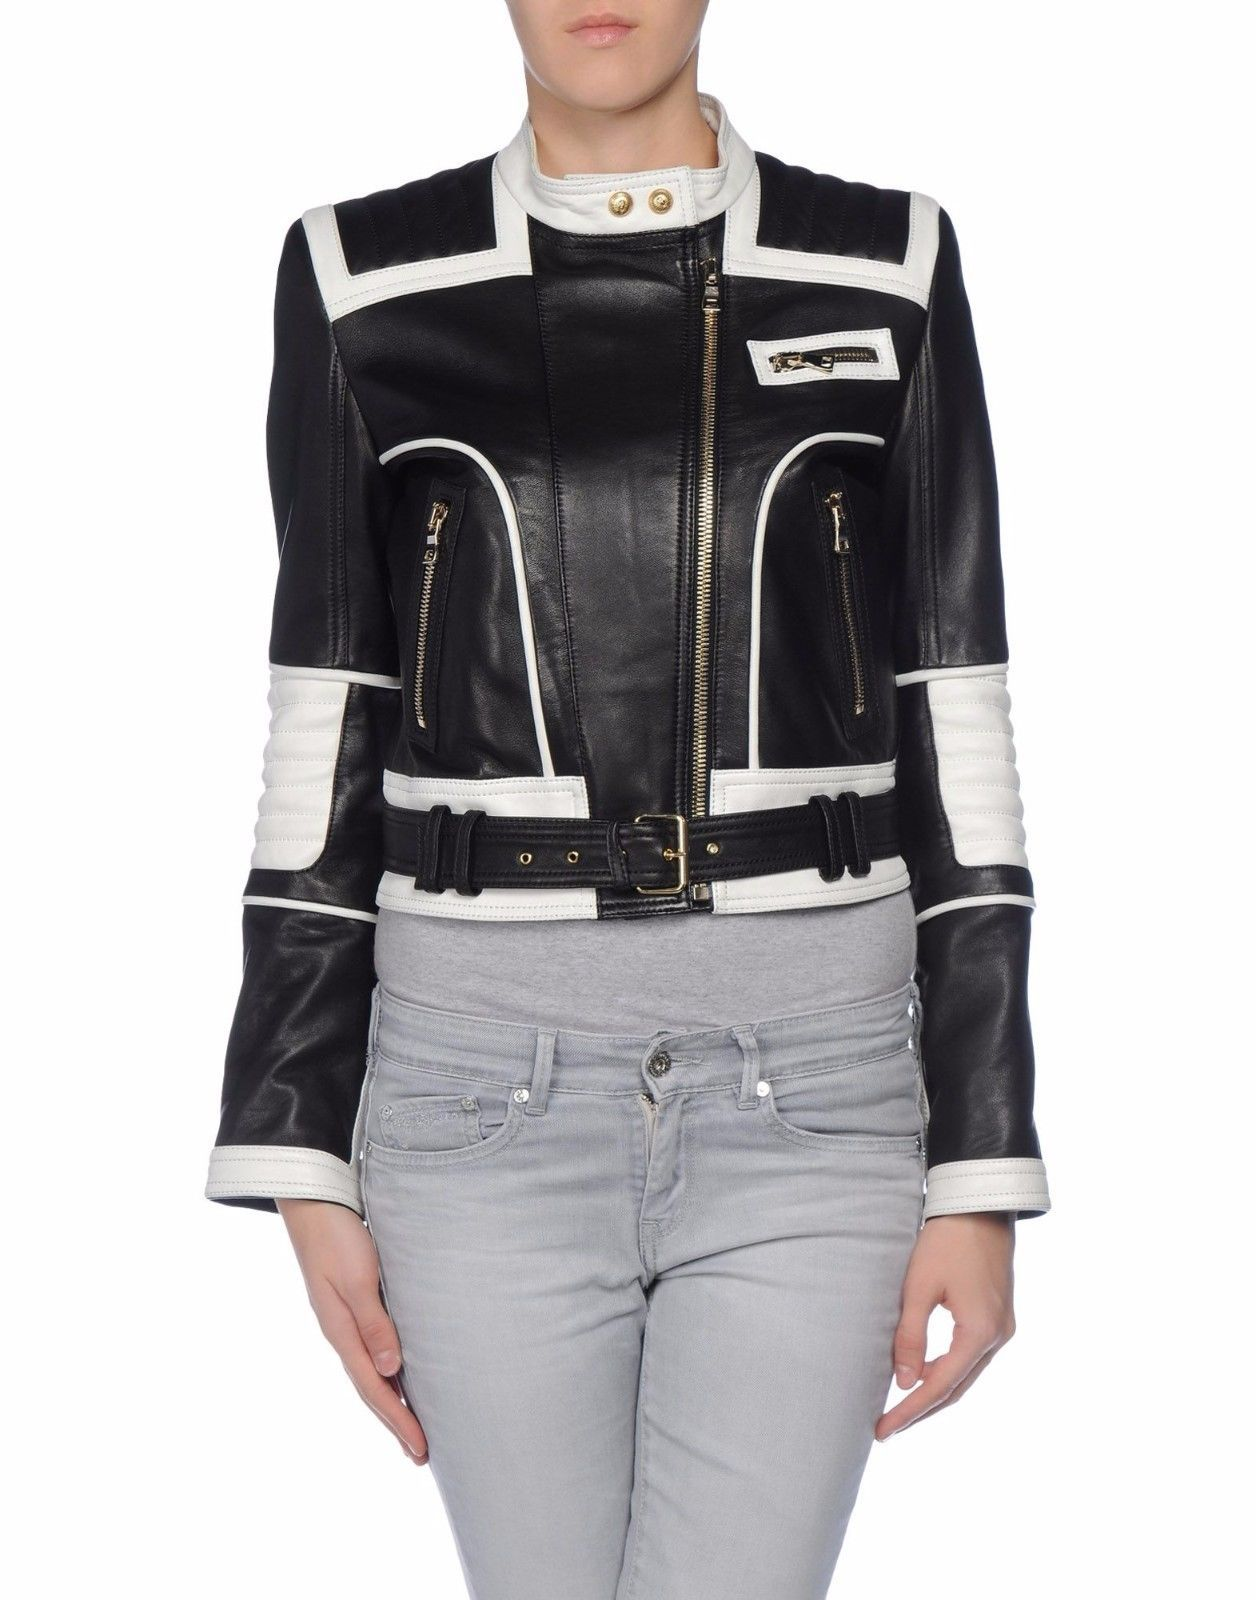 HotLeatherWorld Women Leather Biker Motorcycle Women Genuine Leather Jacket H3